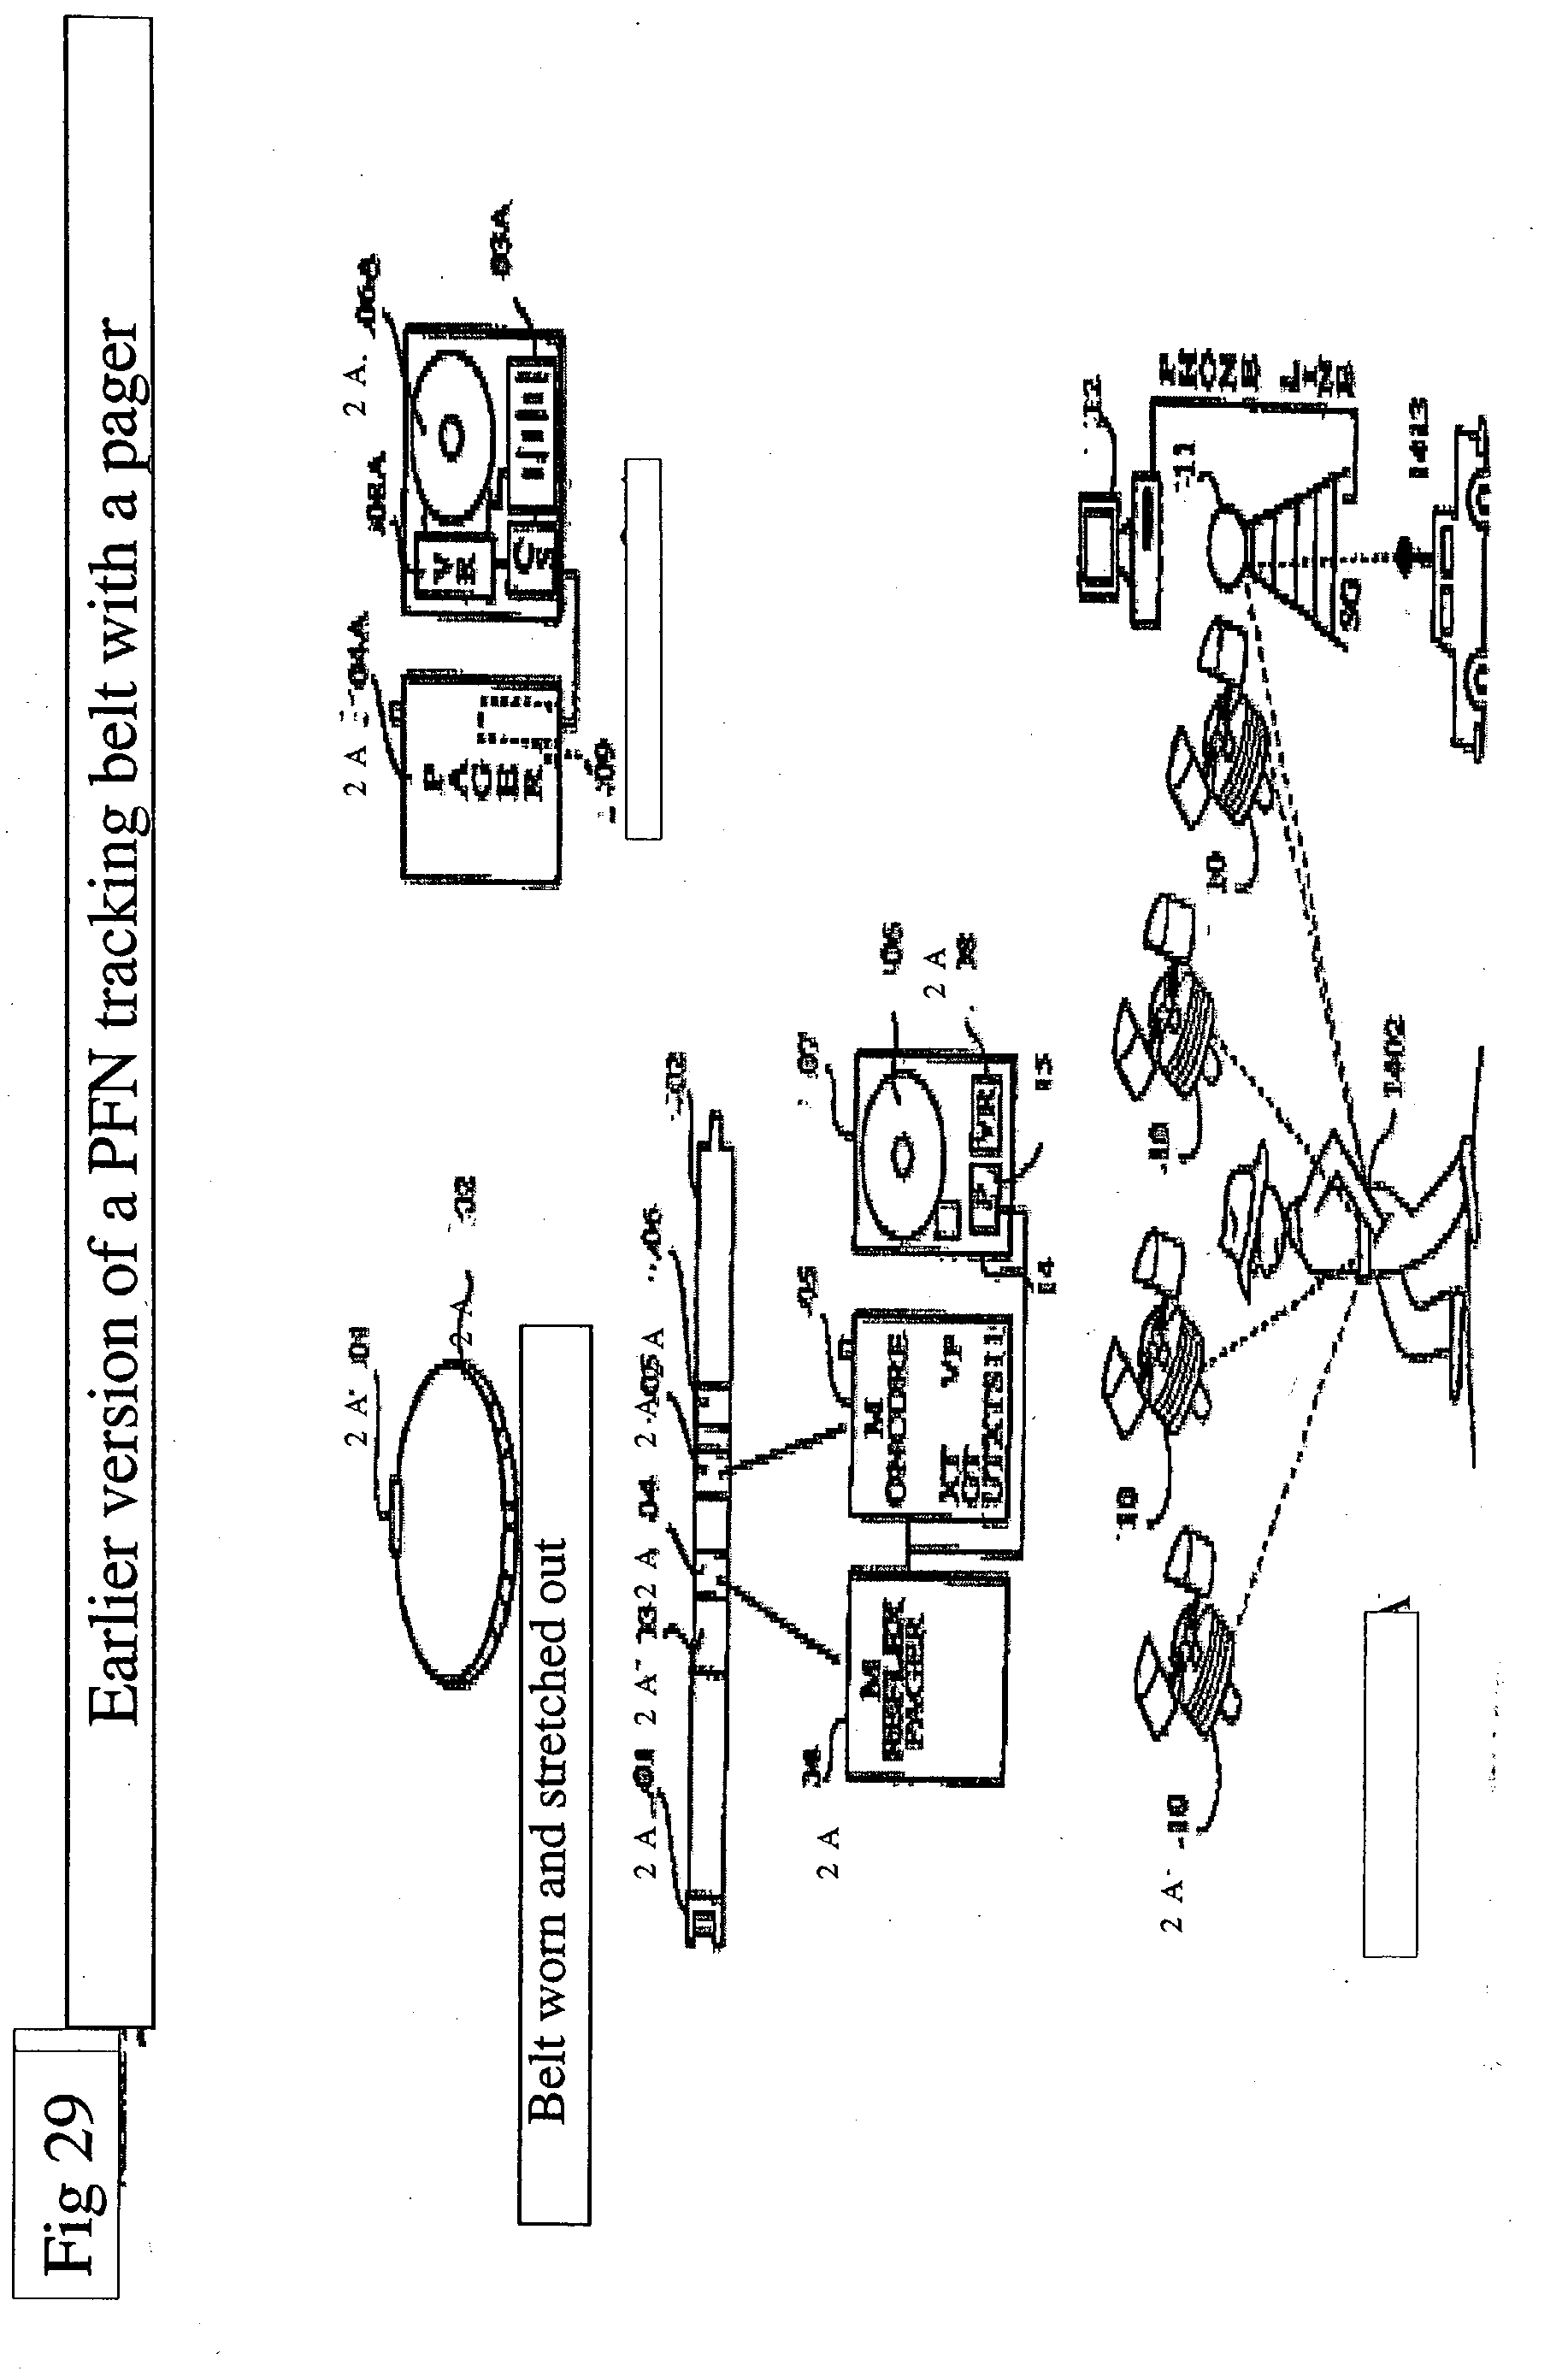 Tv Remote Control Jammer Circuit Diagram Super Patent Us 20030093187a1 Images